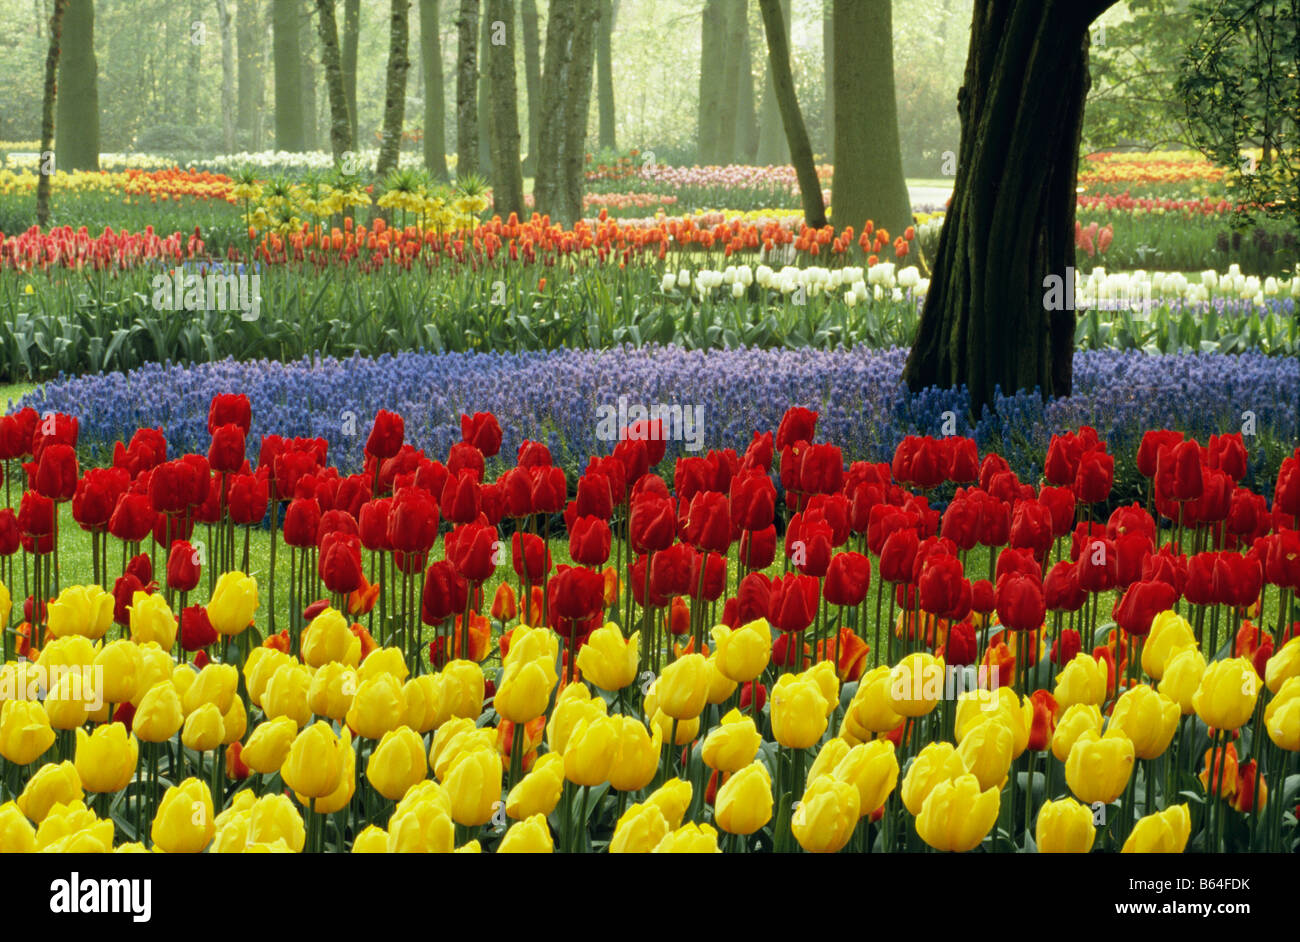 The Netherlands, Lisse. Flower gardens called De Keukenhof. Tulips. - Stock Image